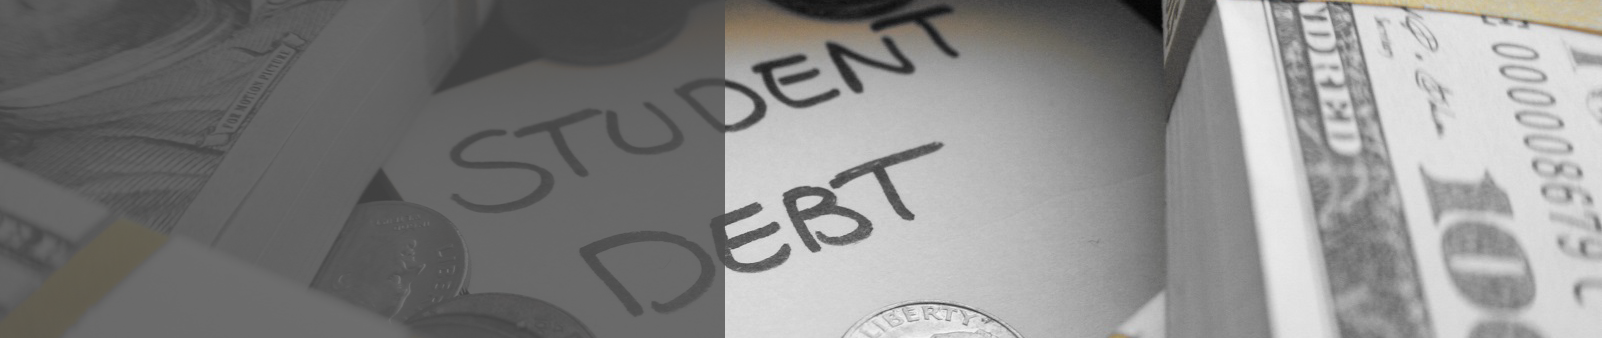 "Debt - ""Student Debt"" written with cash around word"